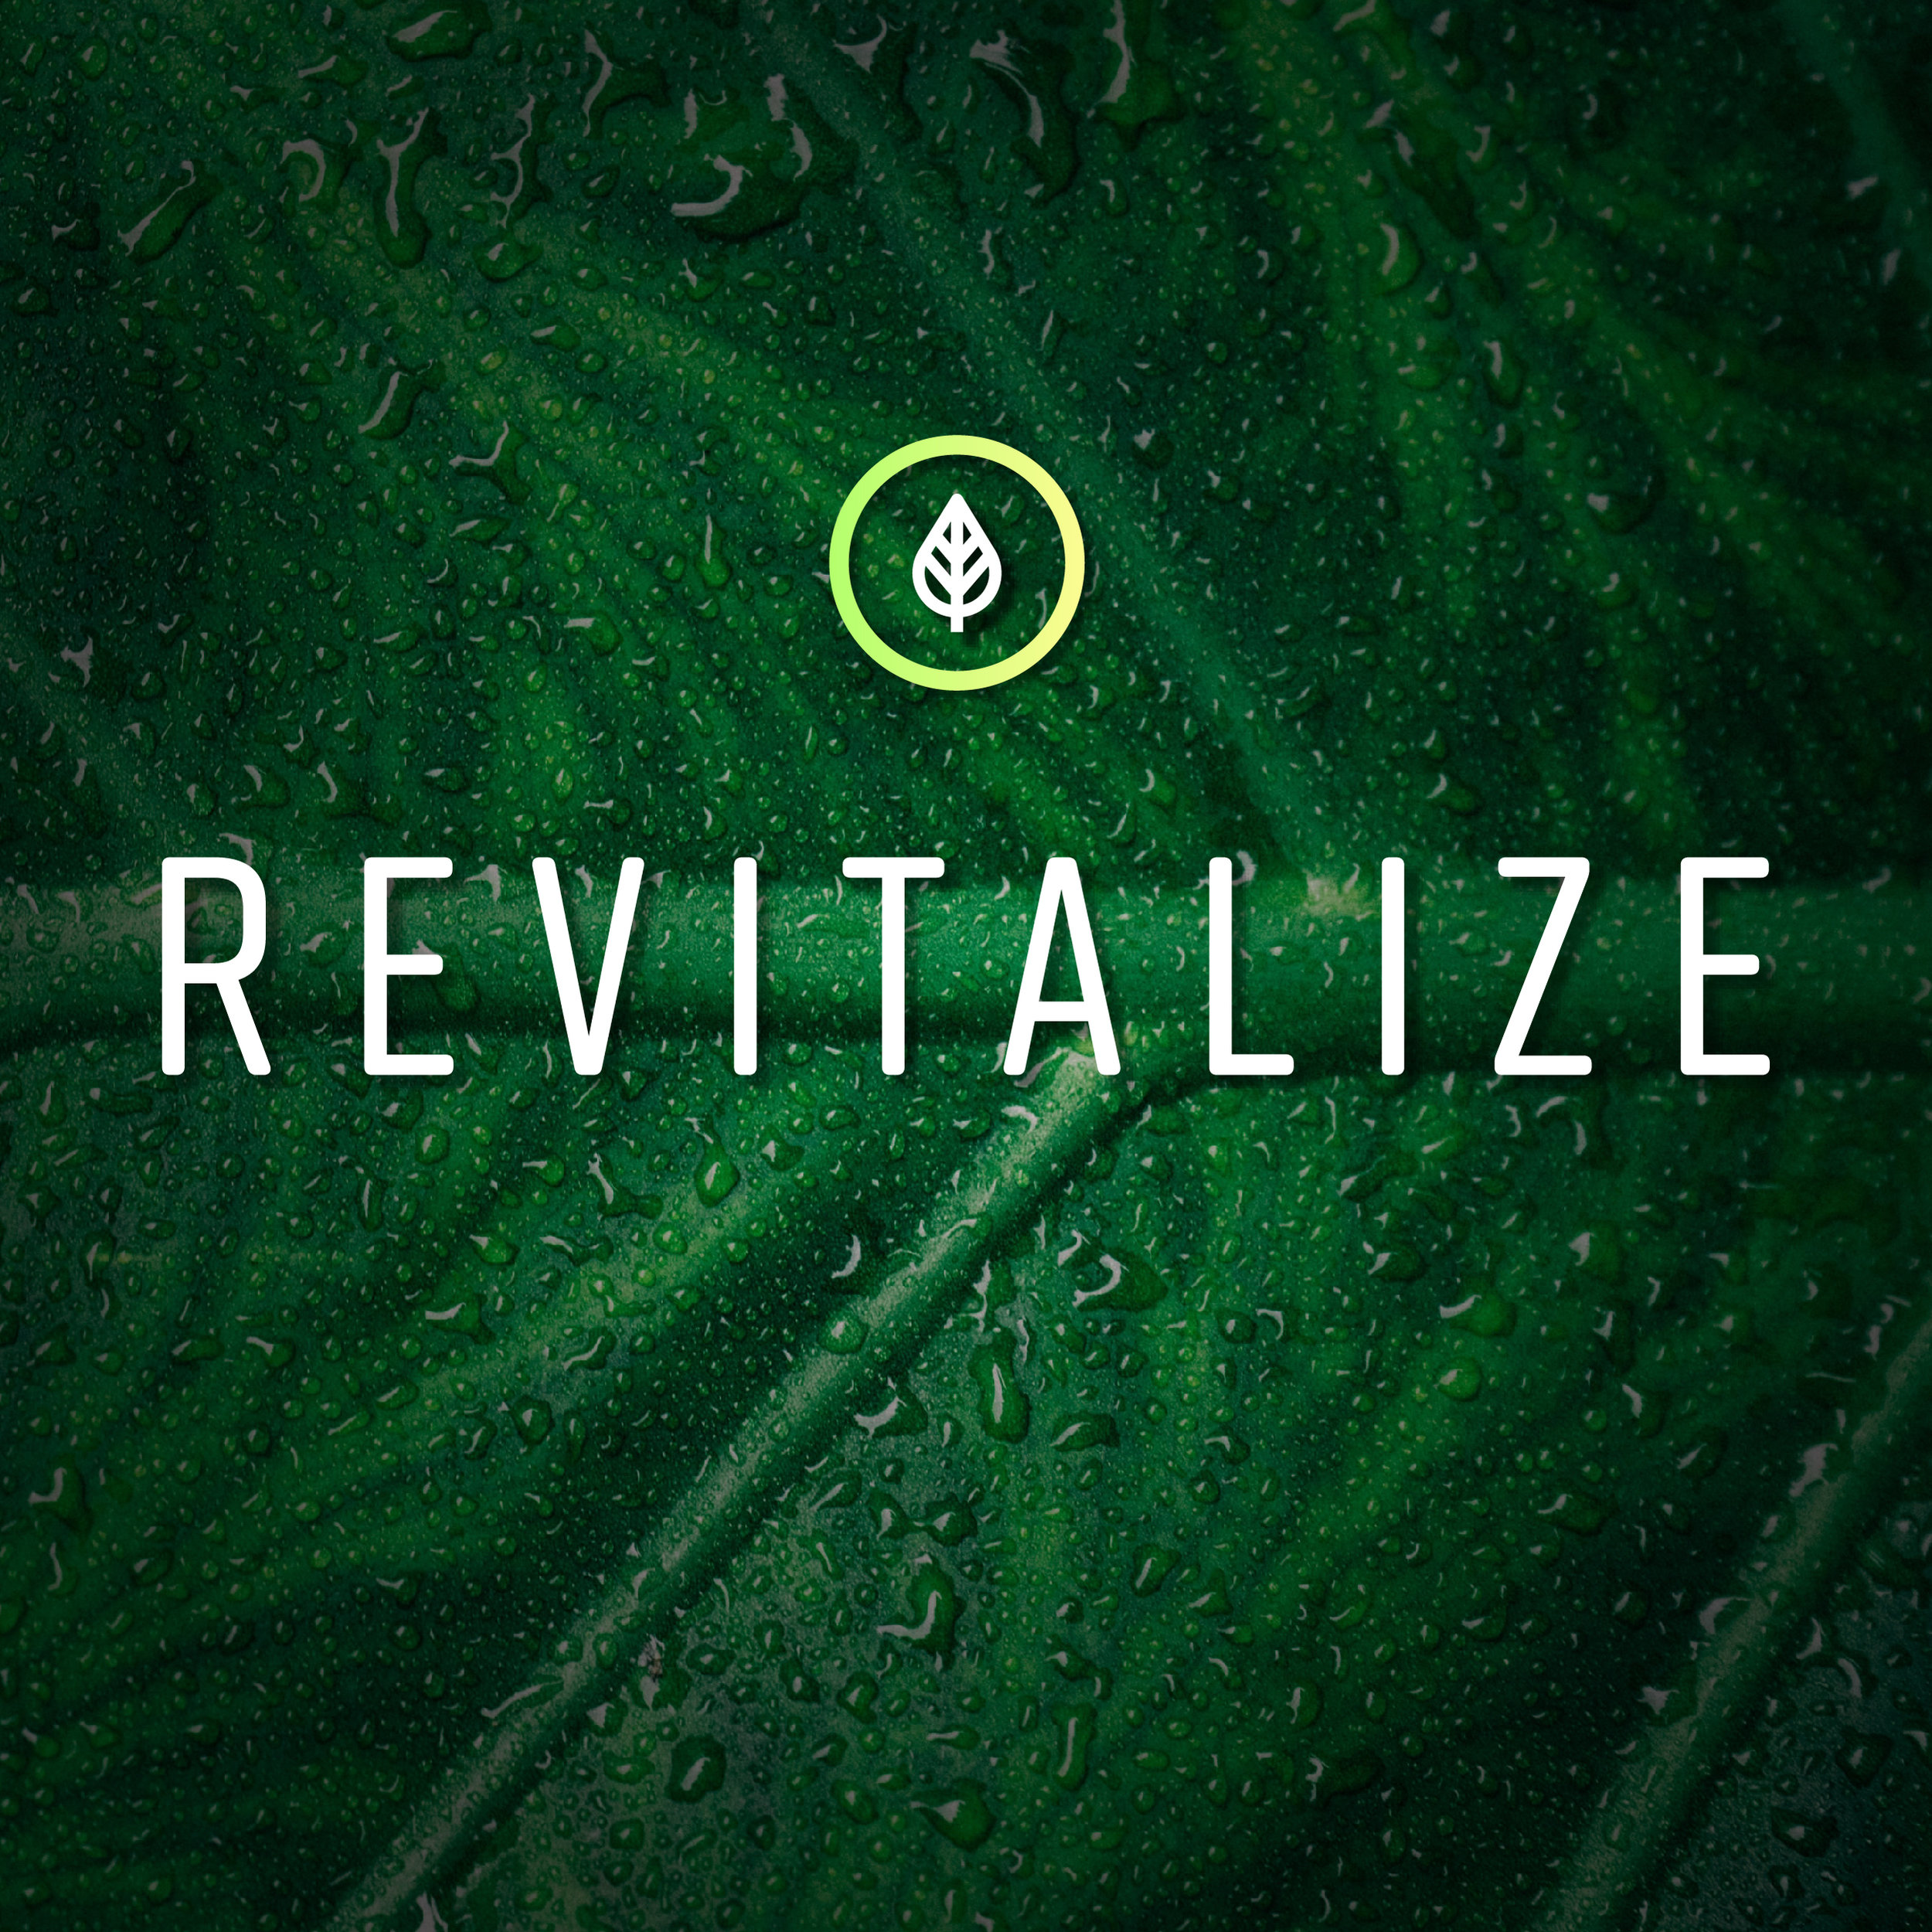 Revitalize_graphics_Web Square - 600x600.jpg